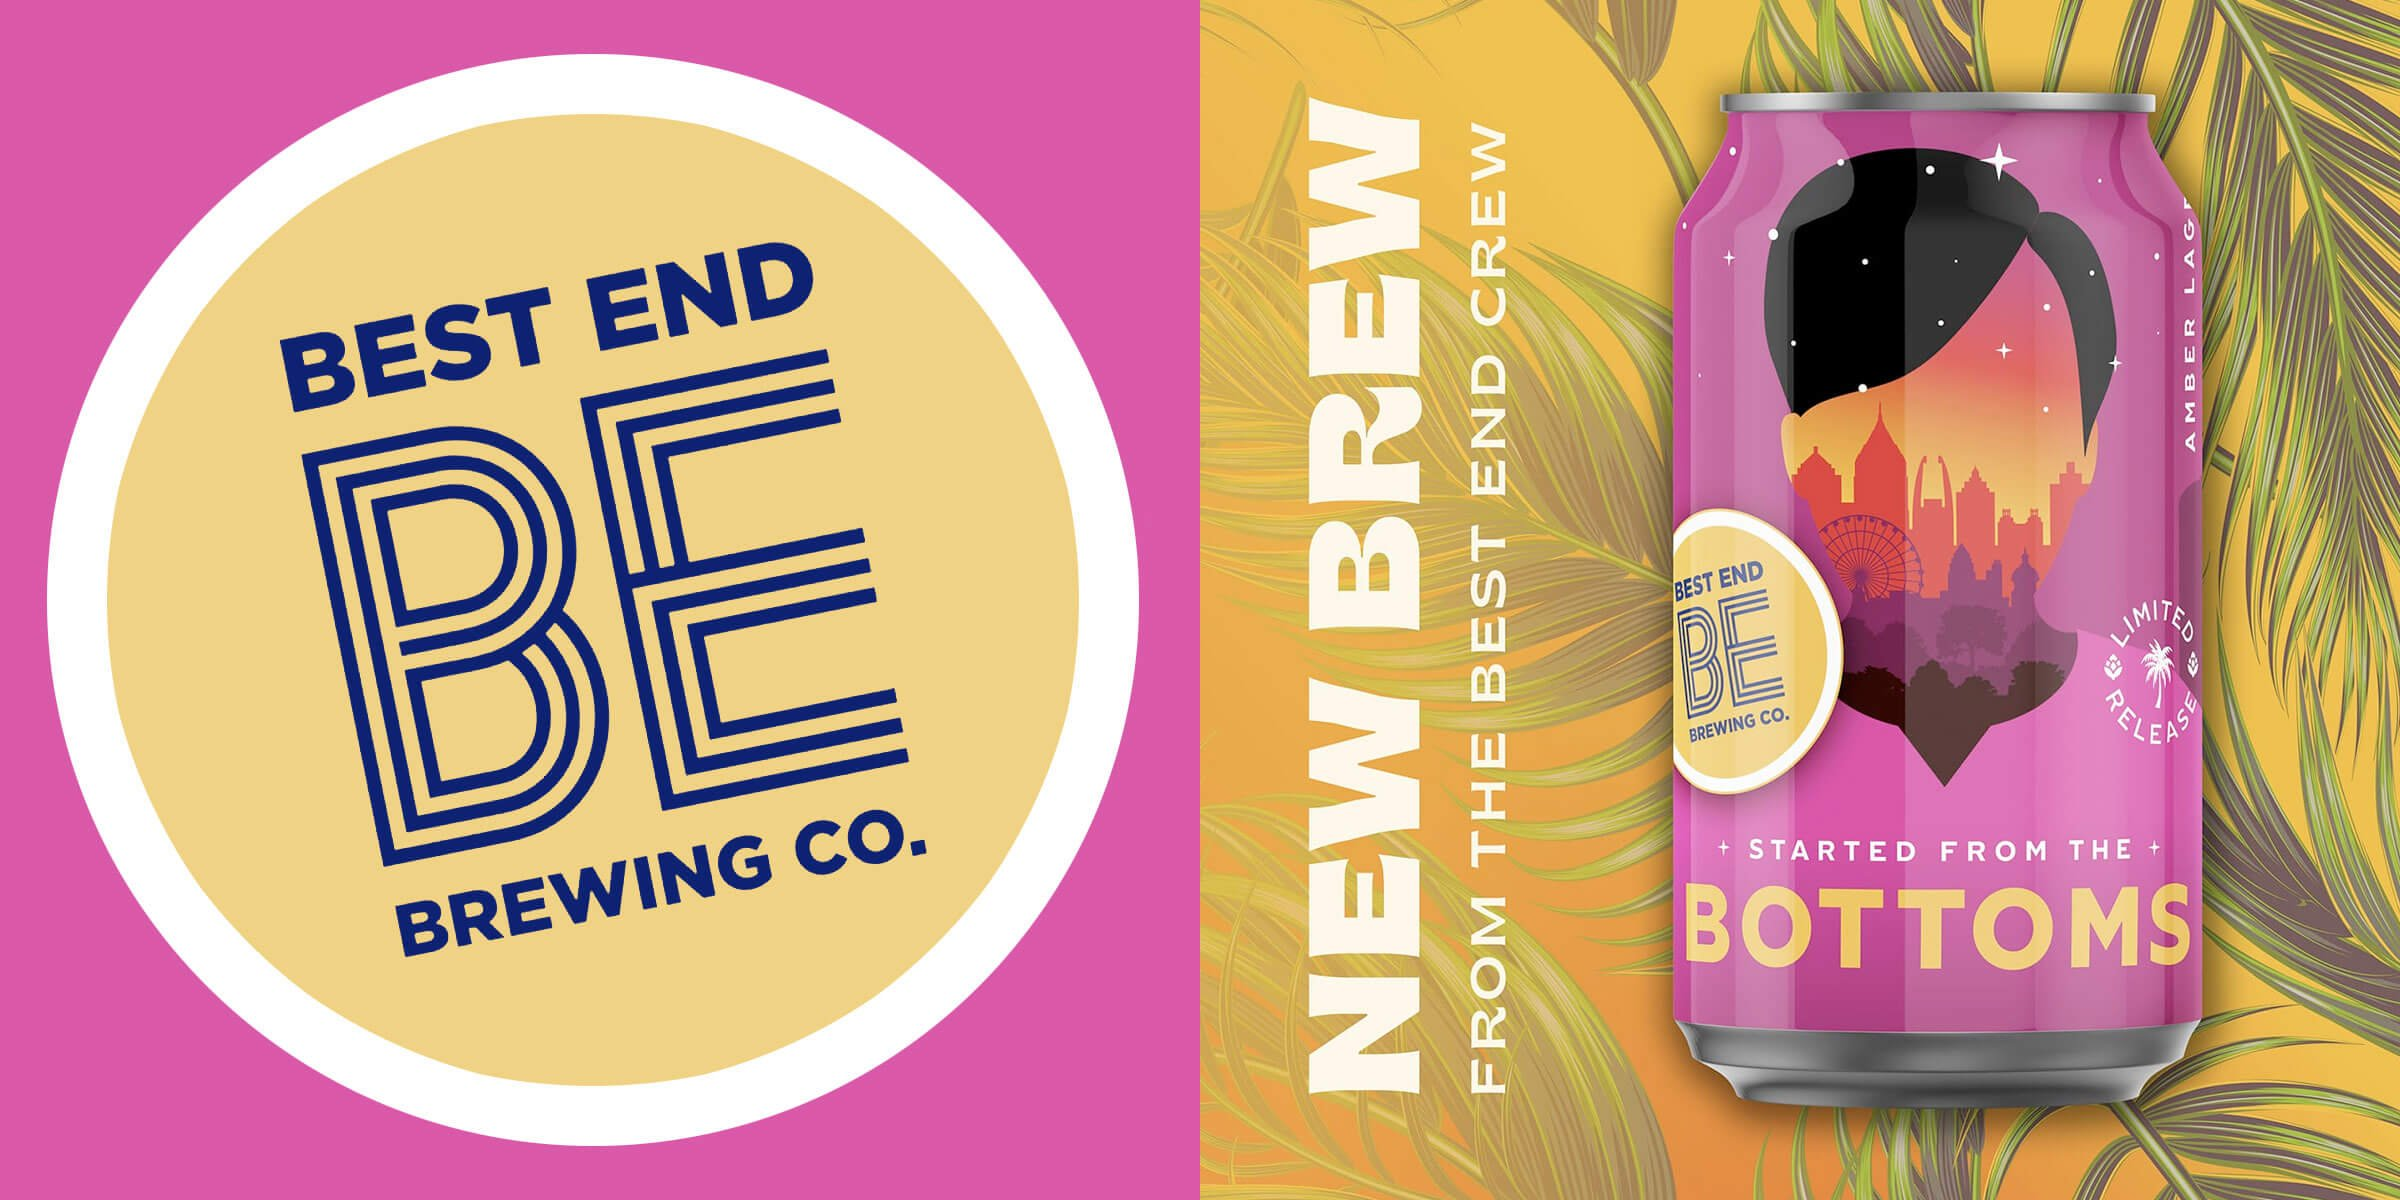 """Best End Brewing Co. released a new Vienna Lager to honor Atlanta Mayor Keisha Lance Bottoms, aptly named """"Started from the Bottoms."""""""